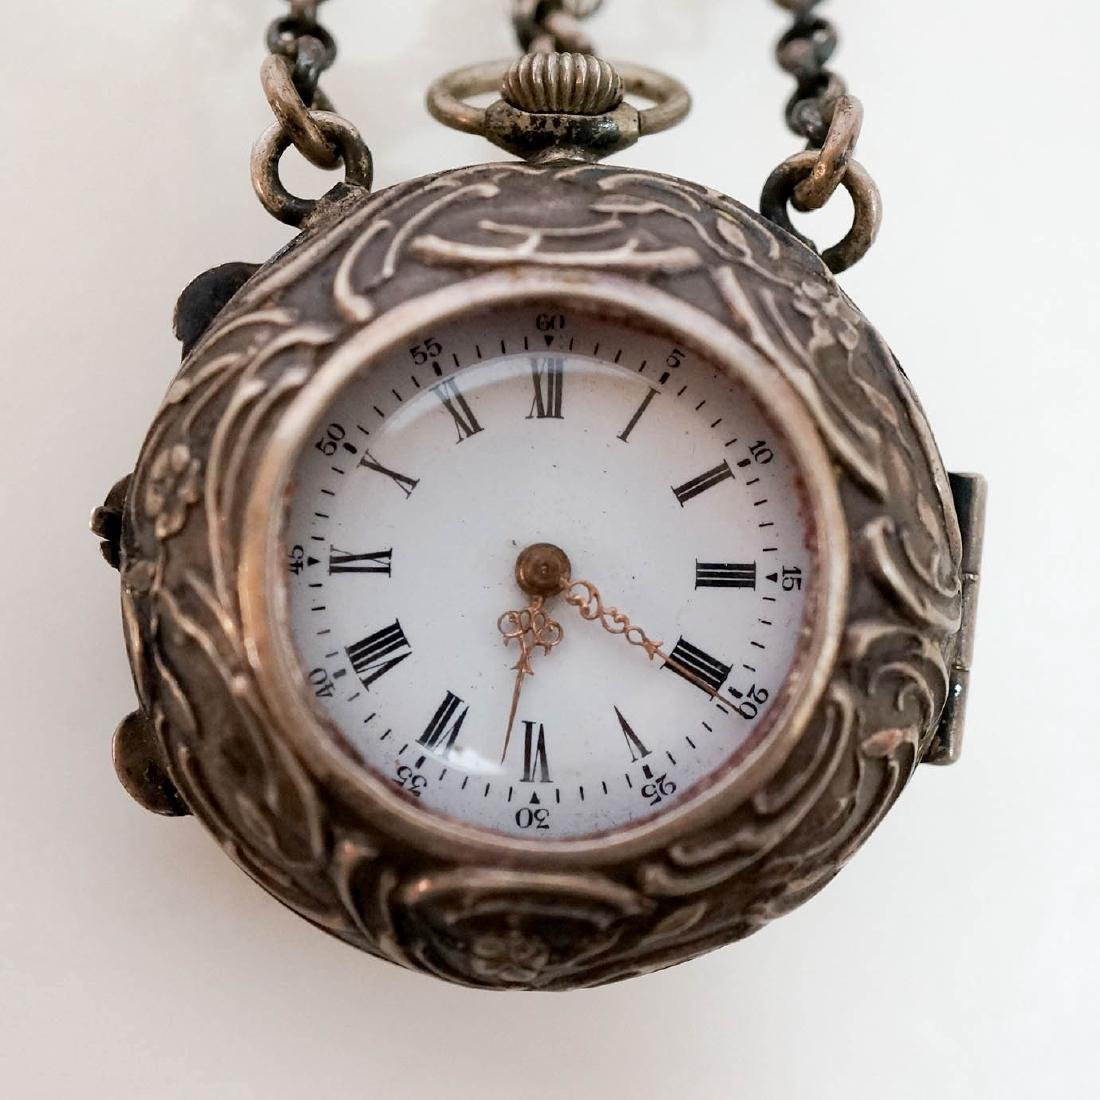 Late 18th C./19th C. Silver Chatelaine Watch Case - 2